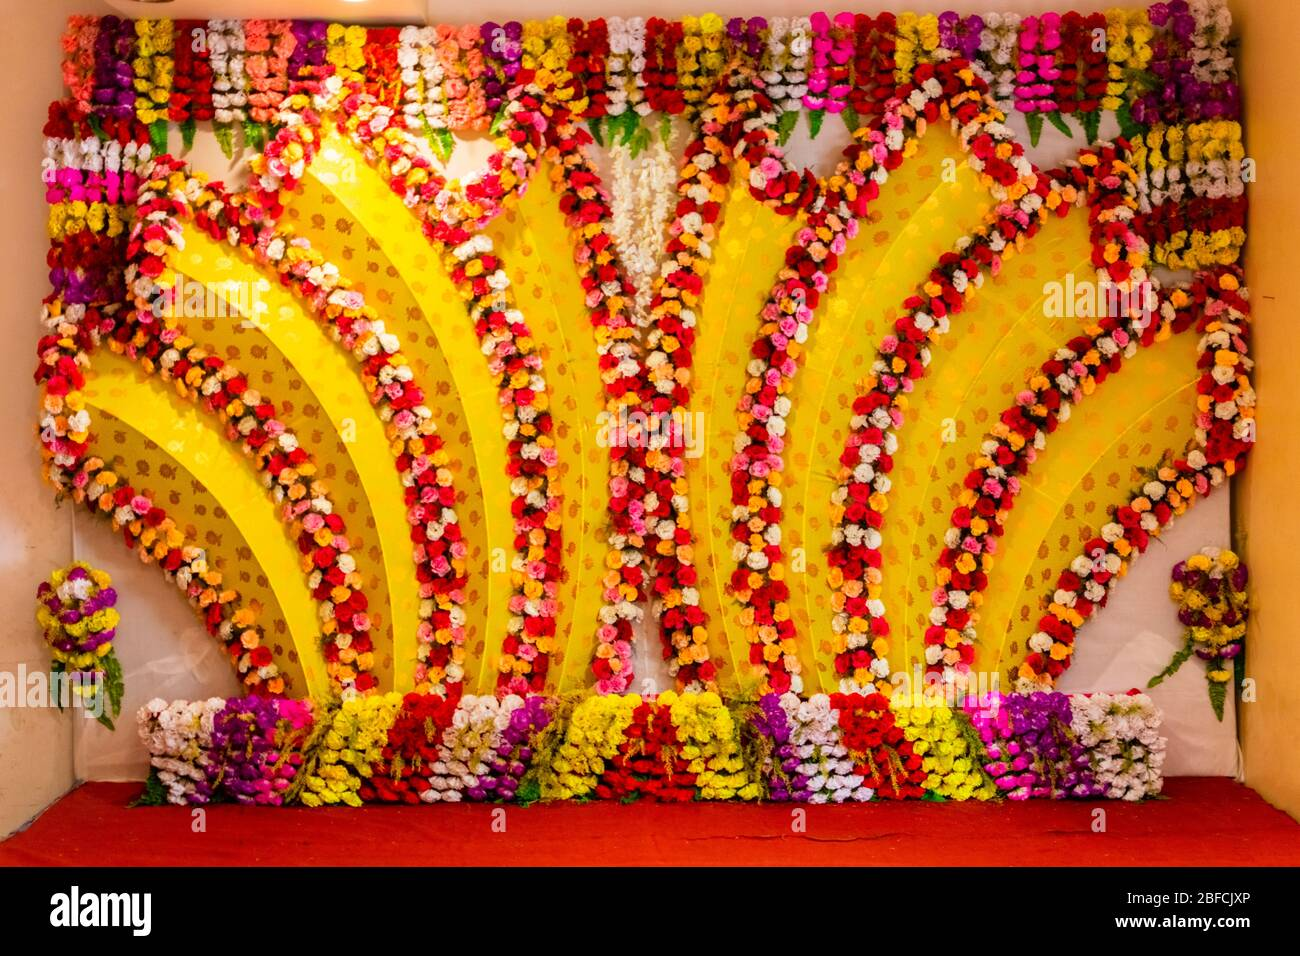 Indian Wedding Sofa High Resolution Stock Photography And Images Alamy